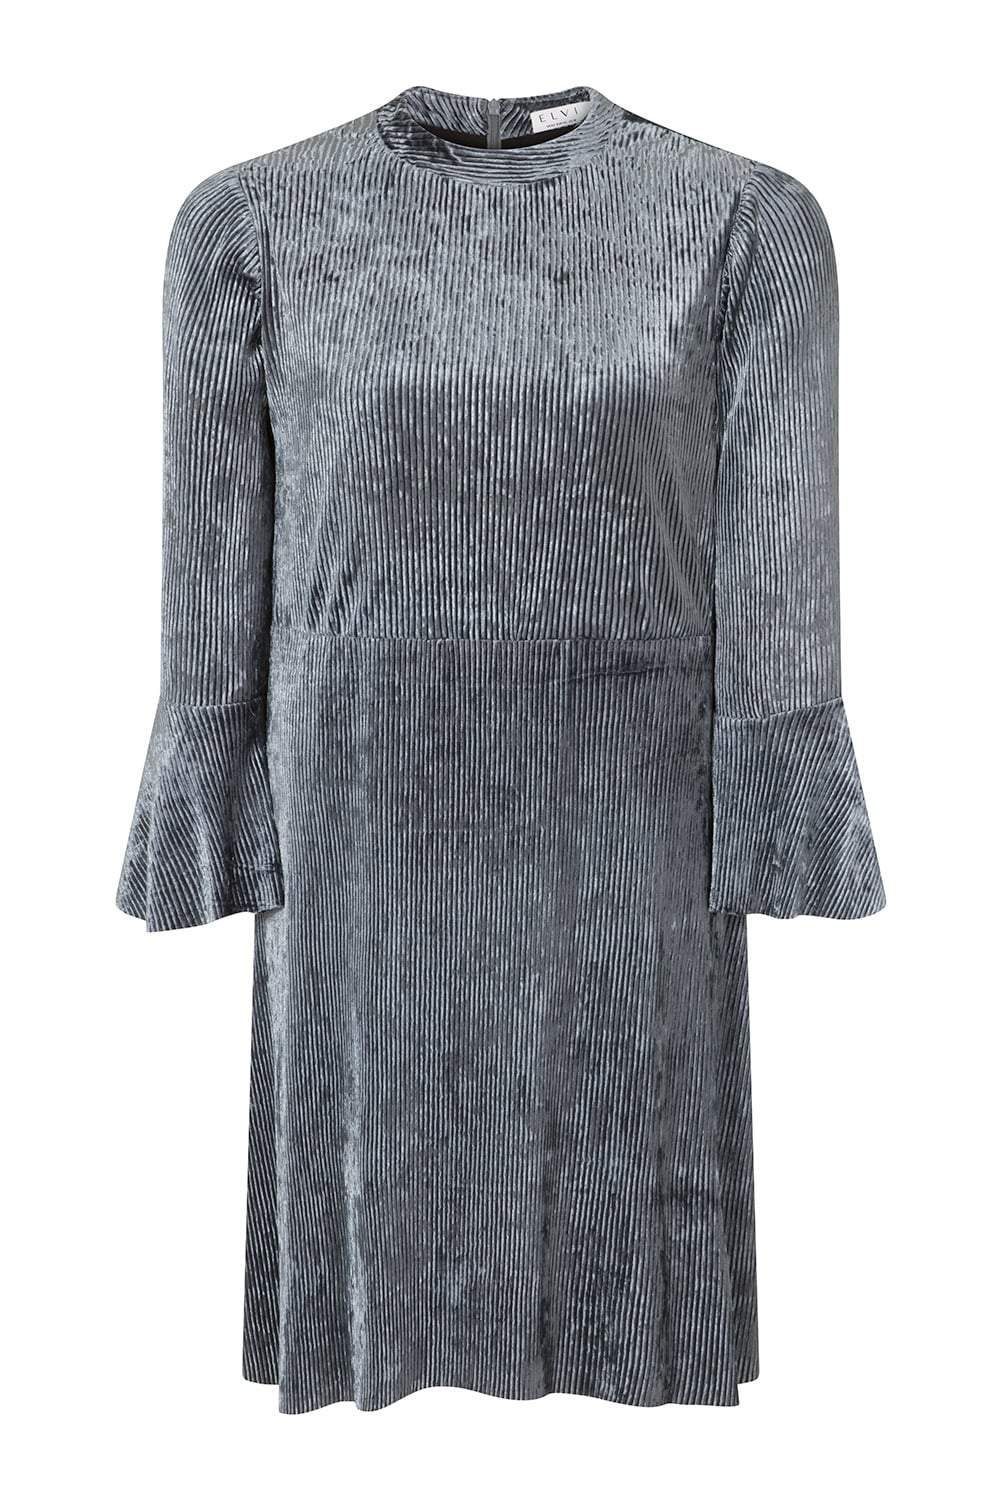 Crushing On Velvet? Here's 10 of Our Favorite Plus Size Pieces From Elvi's Fall Collection!